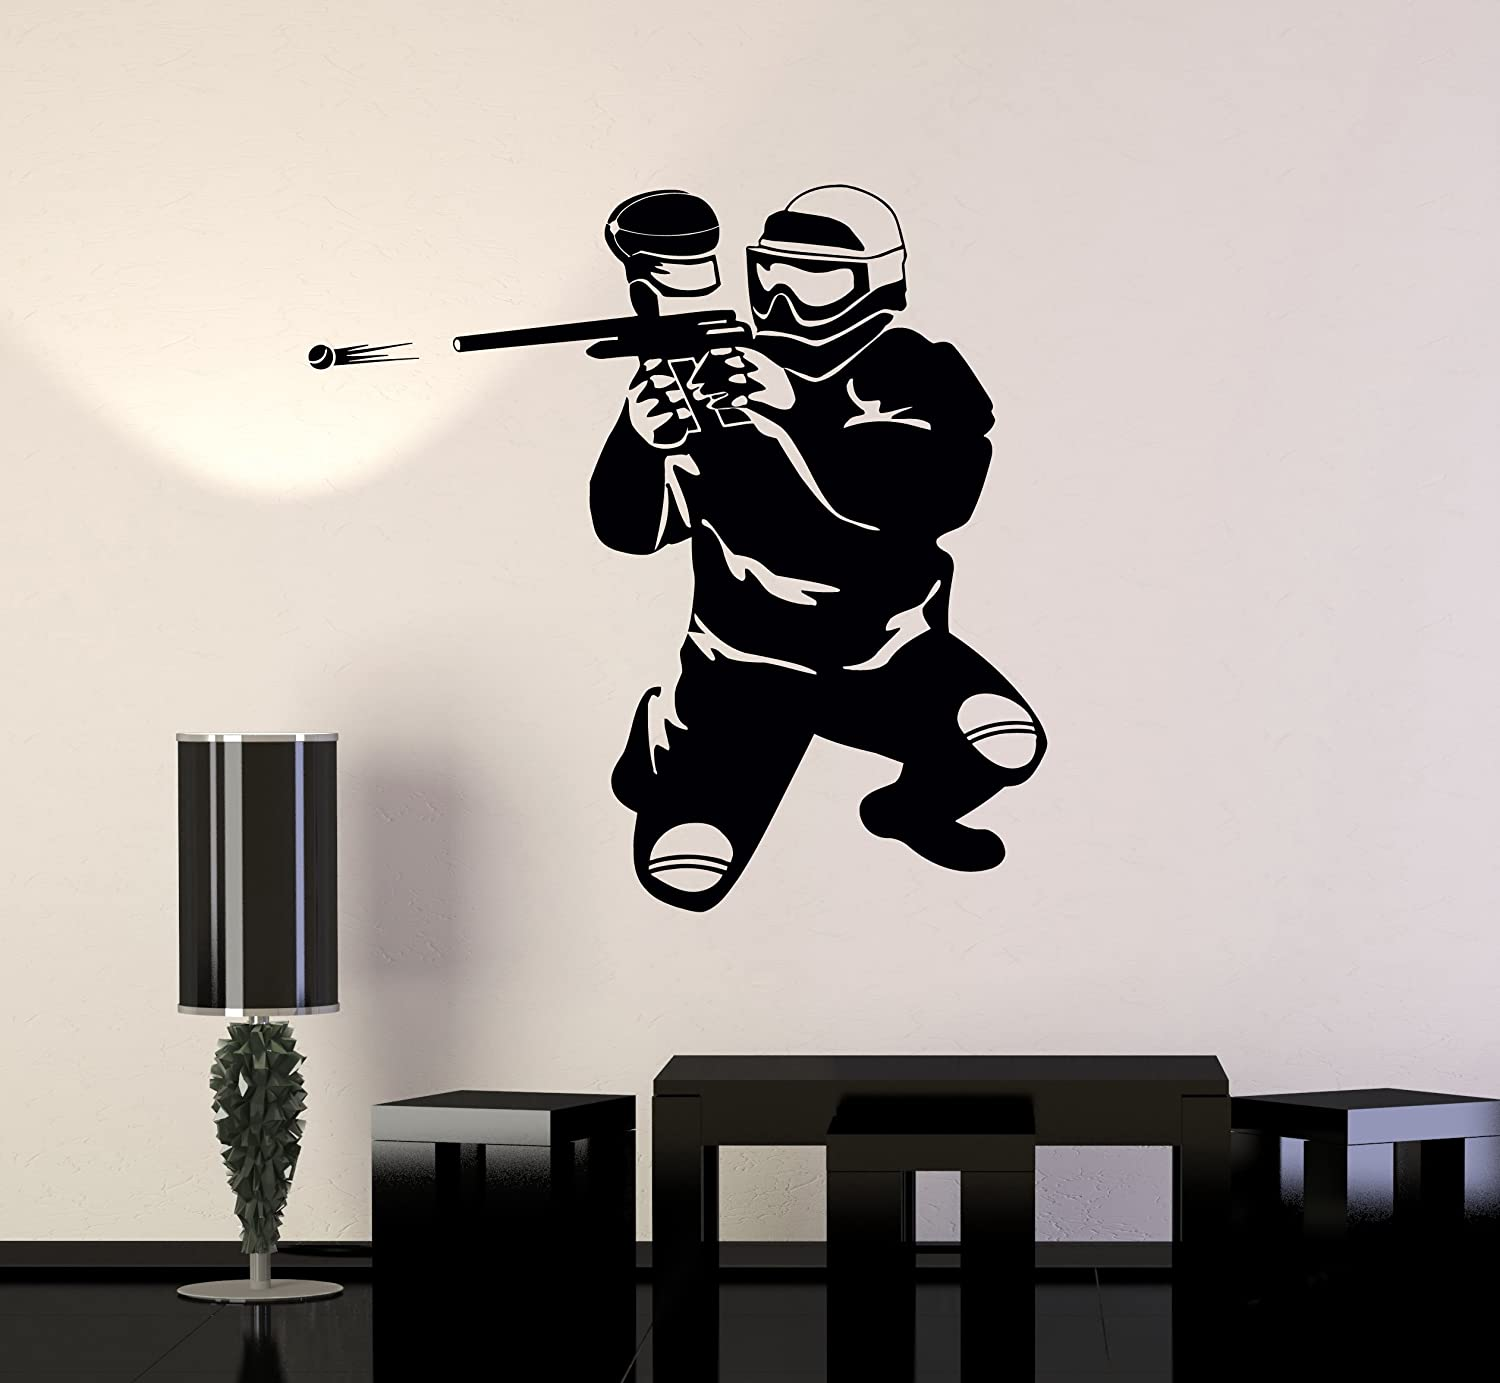 Wall Stickers Rapid rise Houston Mall Paintball Gun Player z1699i Sport L Extreme Cool